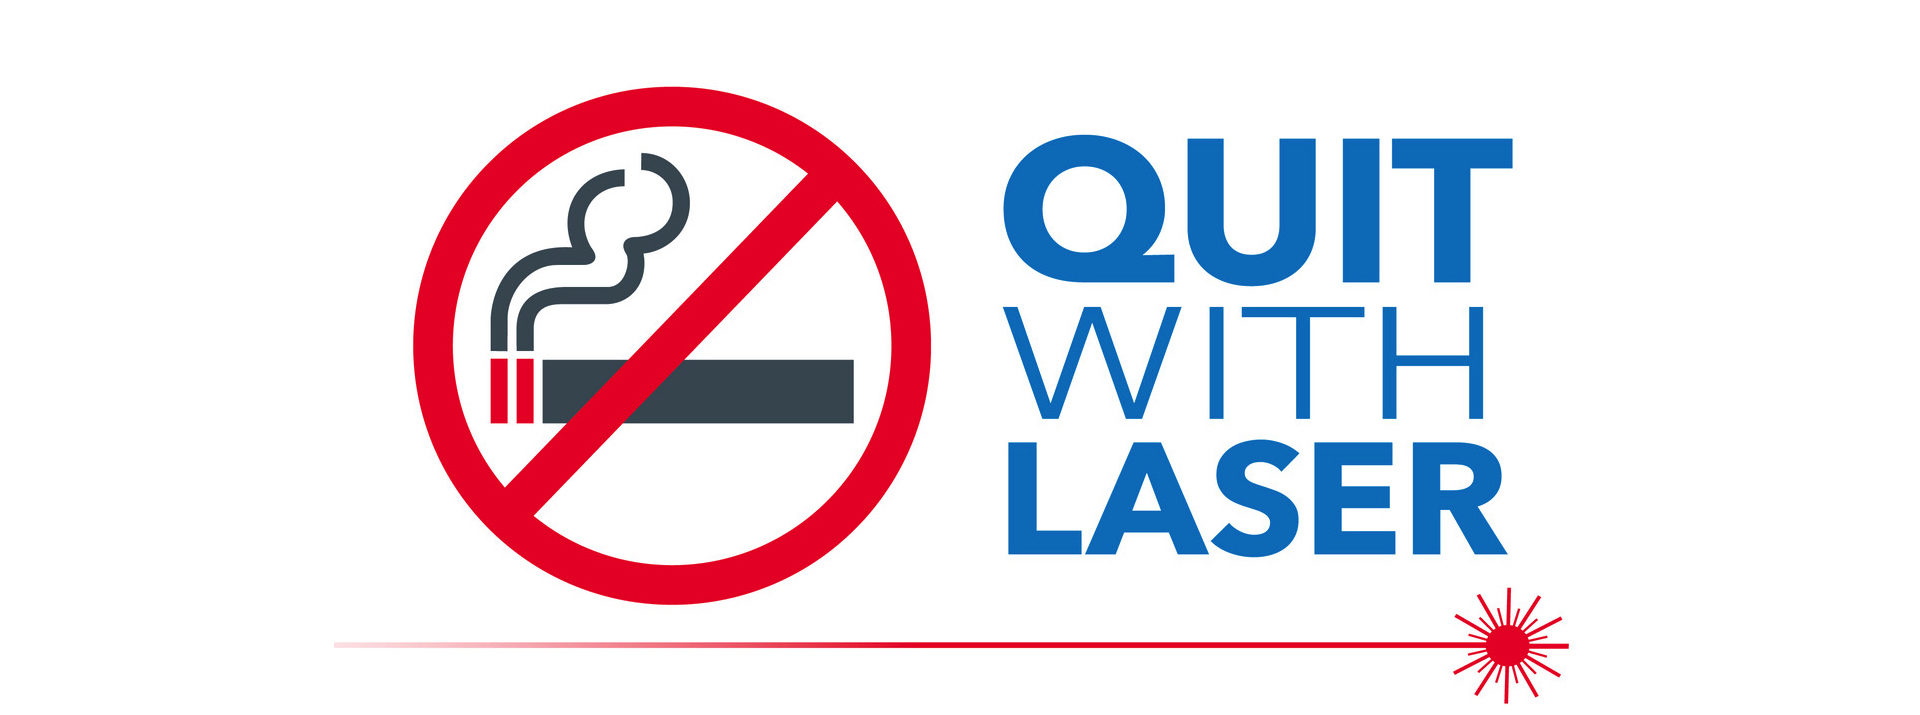 Quit Smoking and Nicotine with Laser Therapy in Ottawa